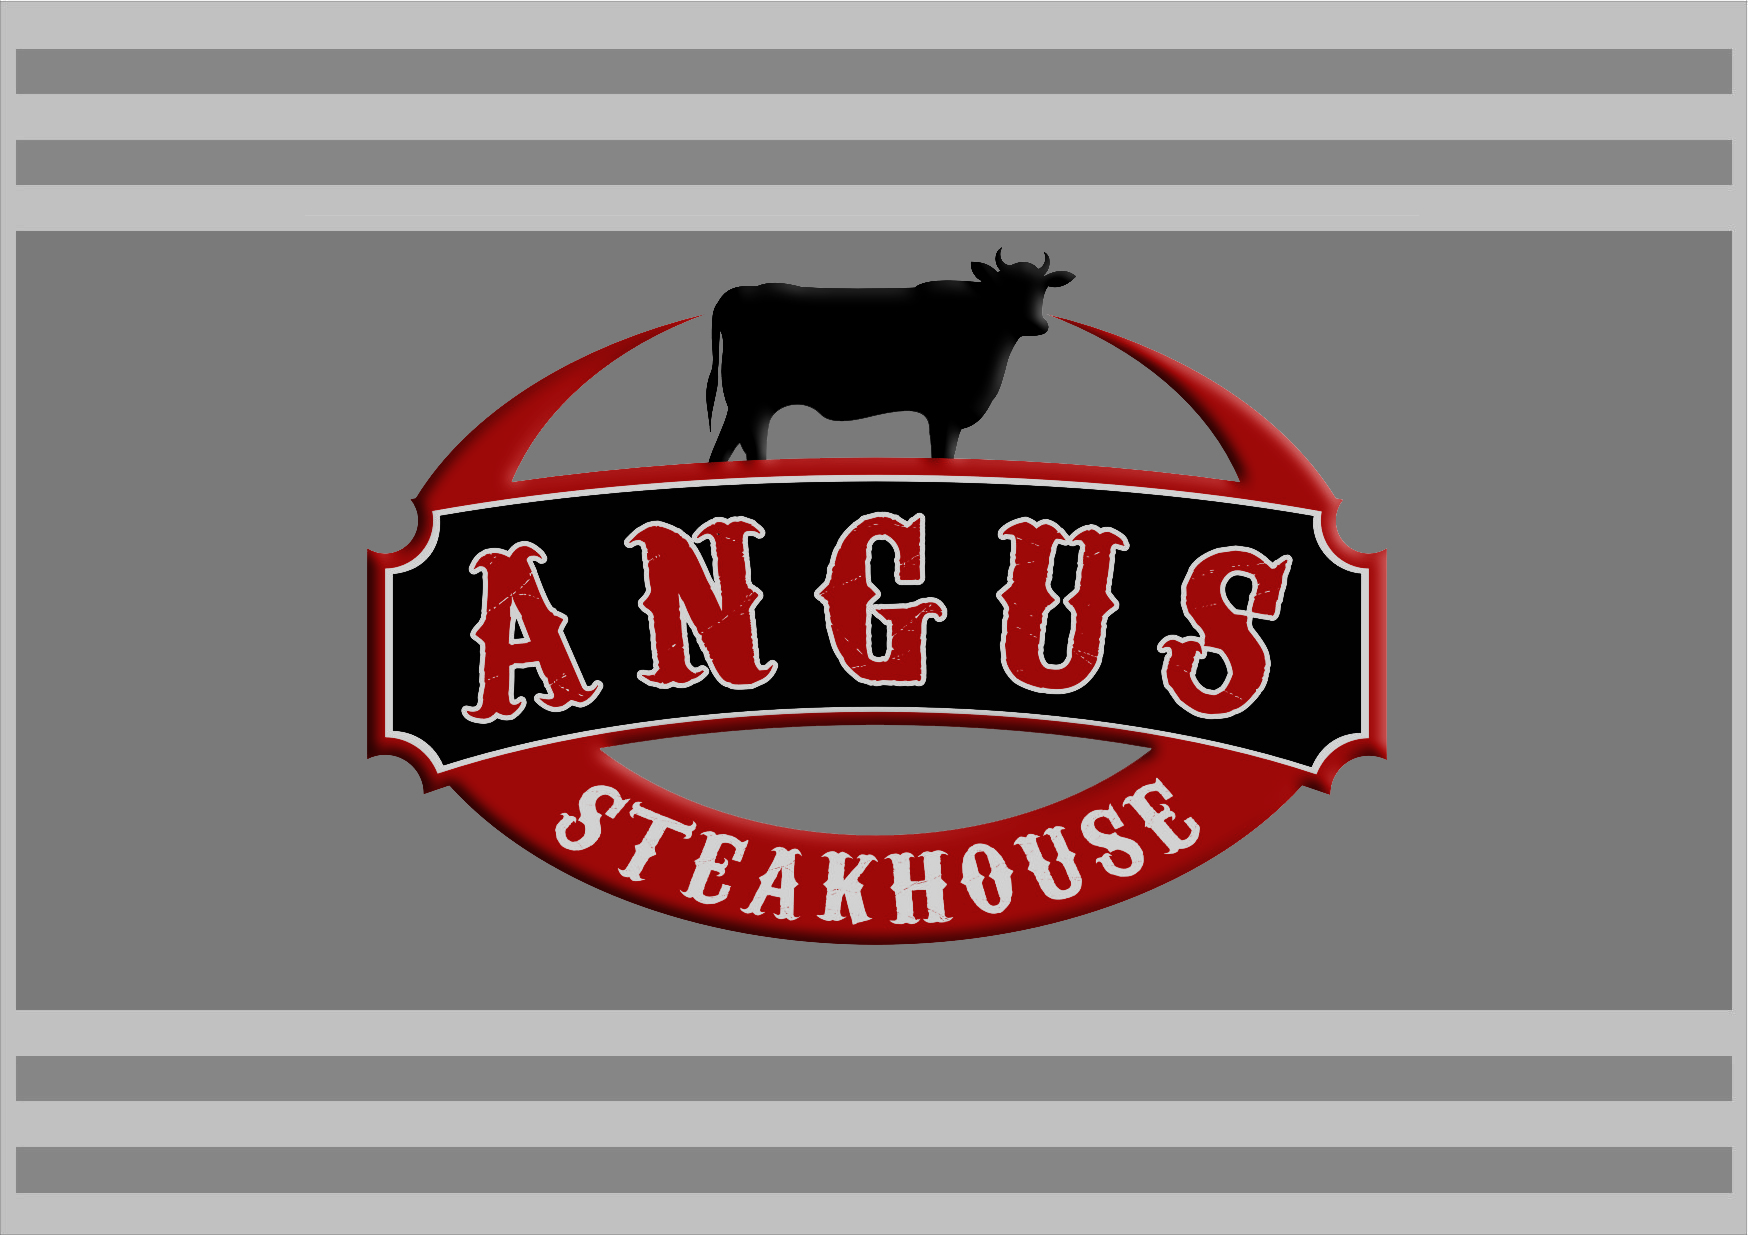 Logo Design by Ngepet_art - Entry No. 104 in the Logo Design Contest Imaginative Custom Design for Angus Steakhouse.